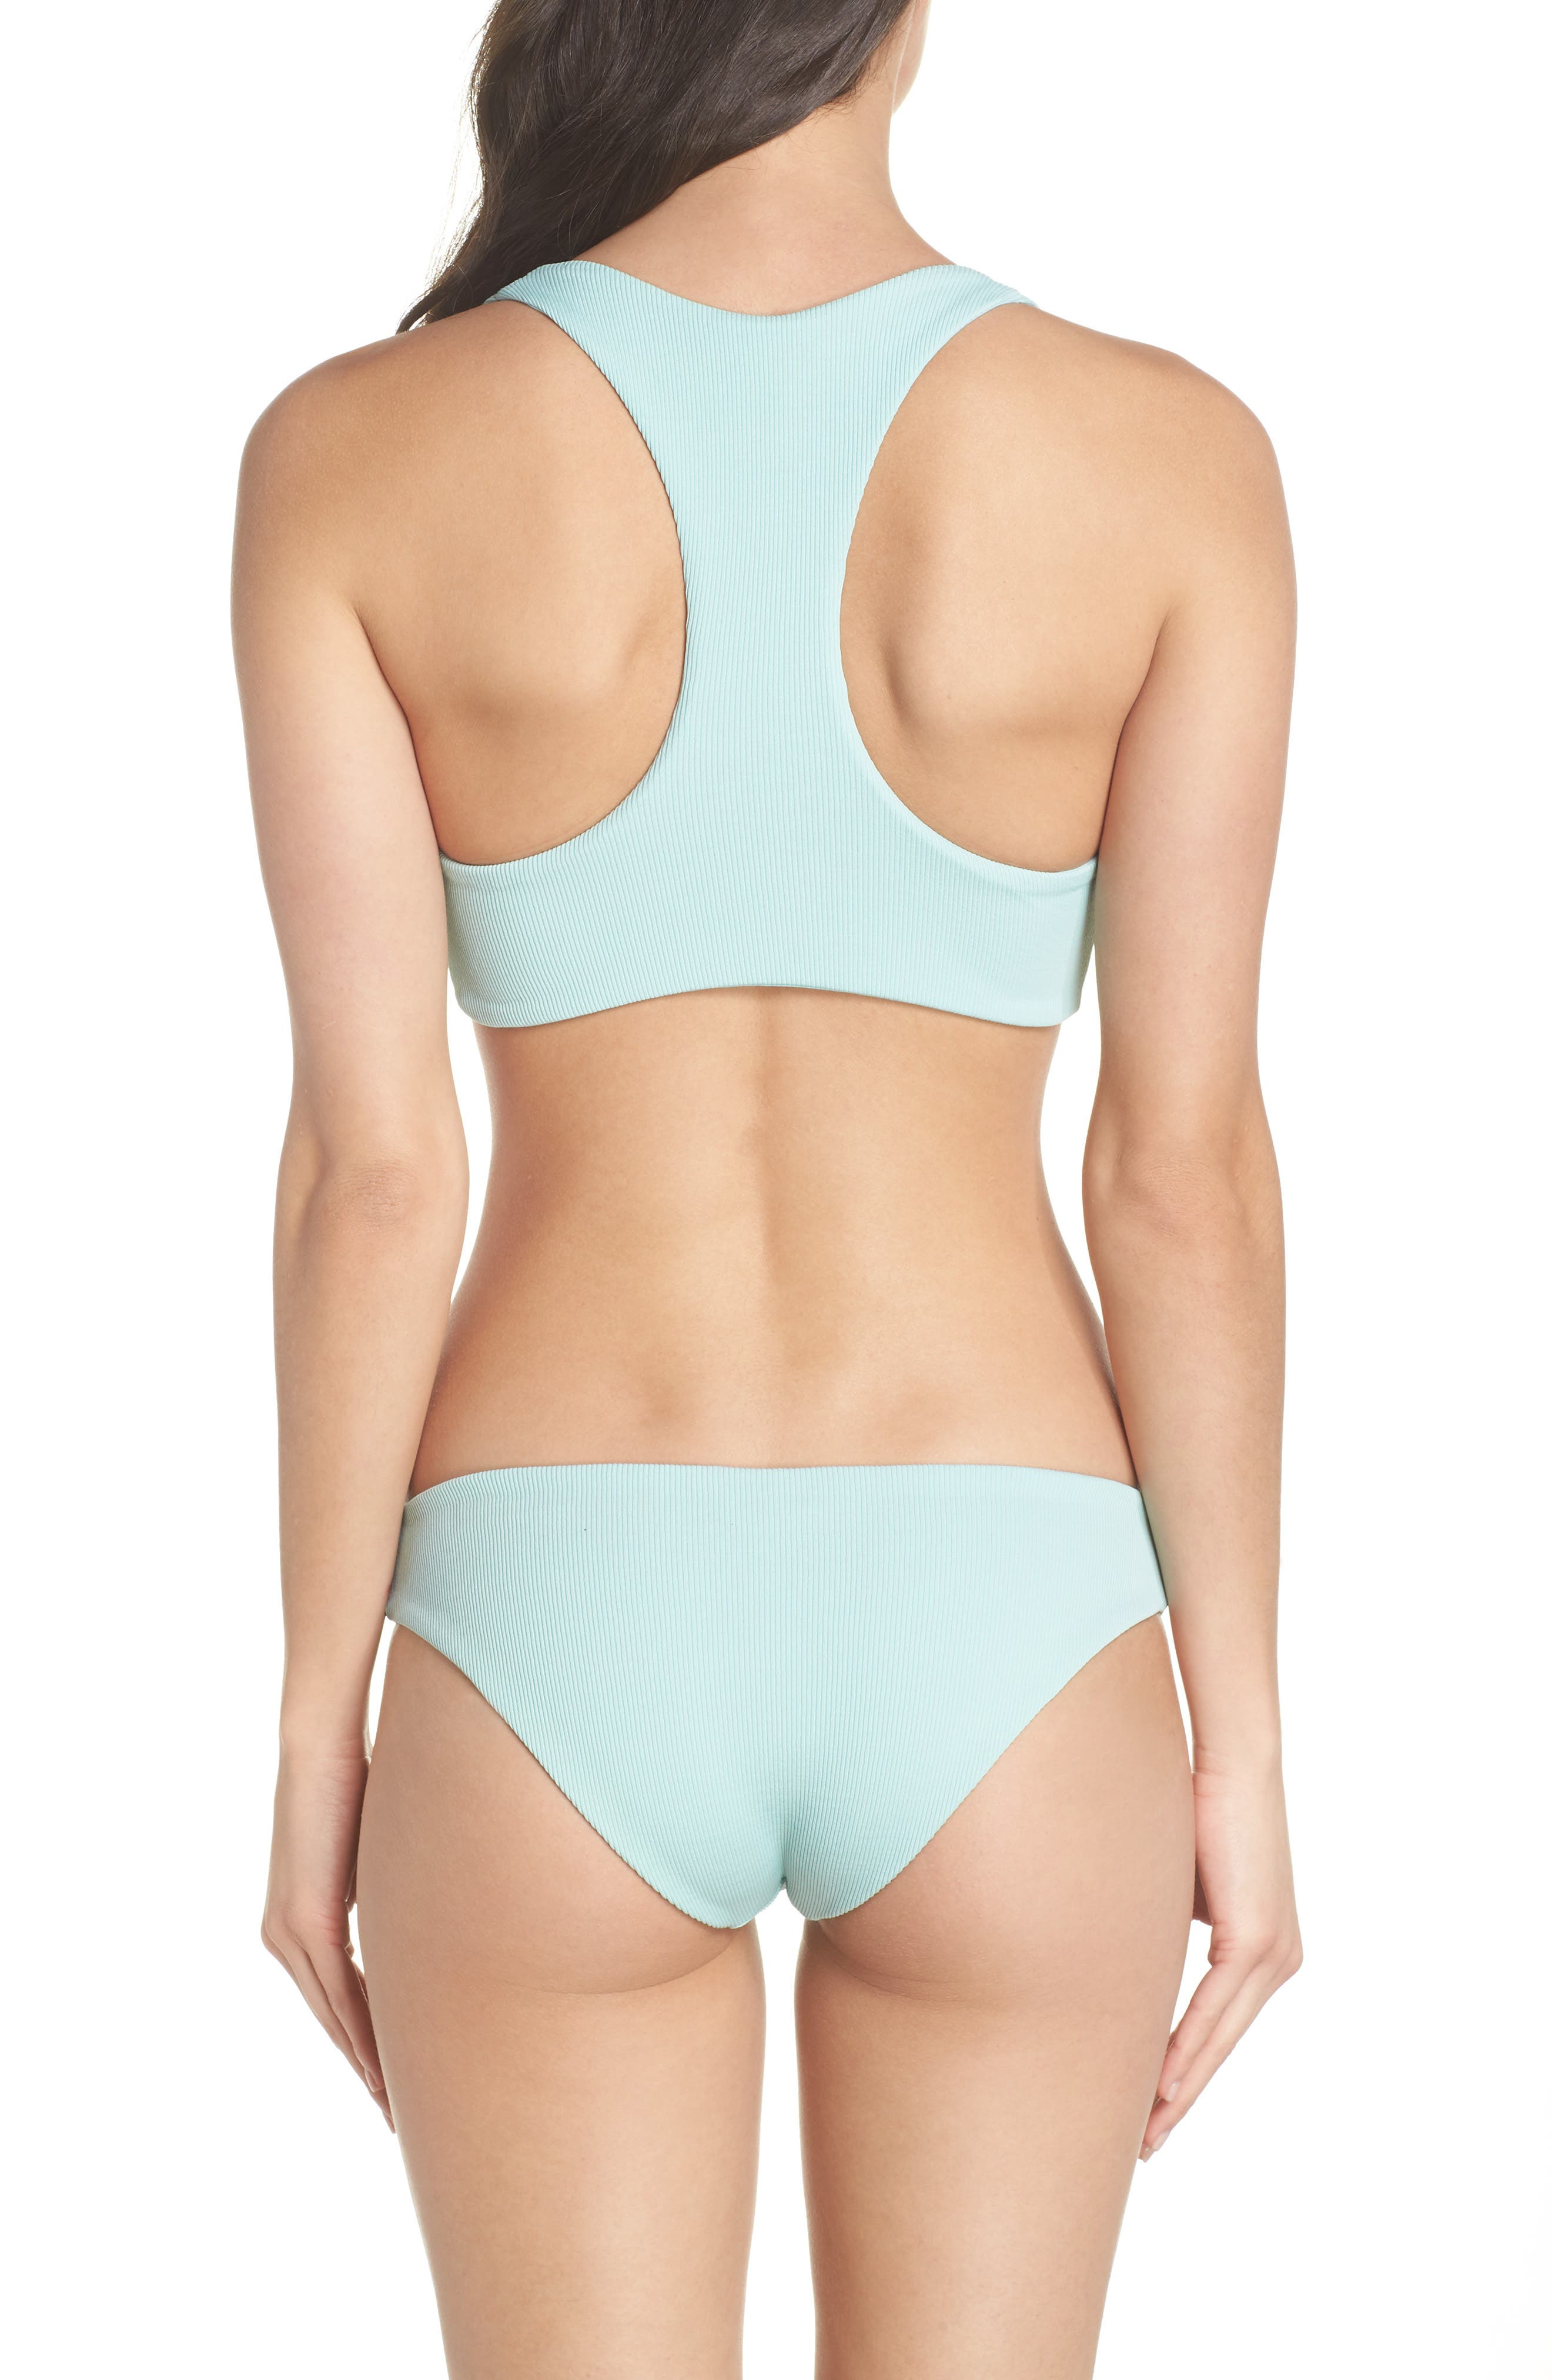 L SPACE, Sandy Bikini Bottoms, Alternate thumbnail 8, color, LIGHT TURQUOISE